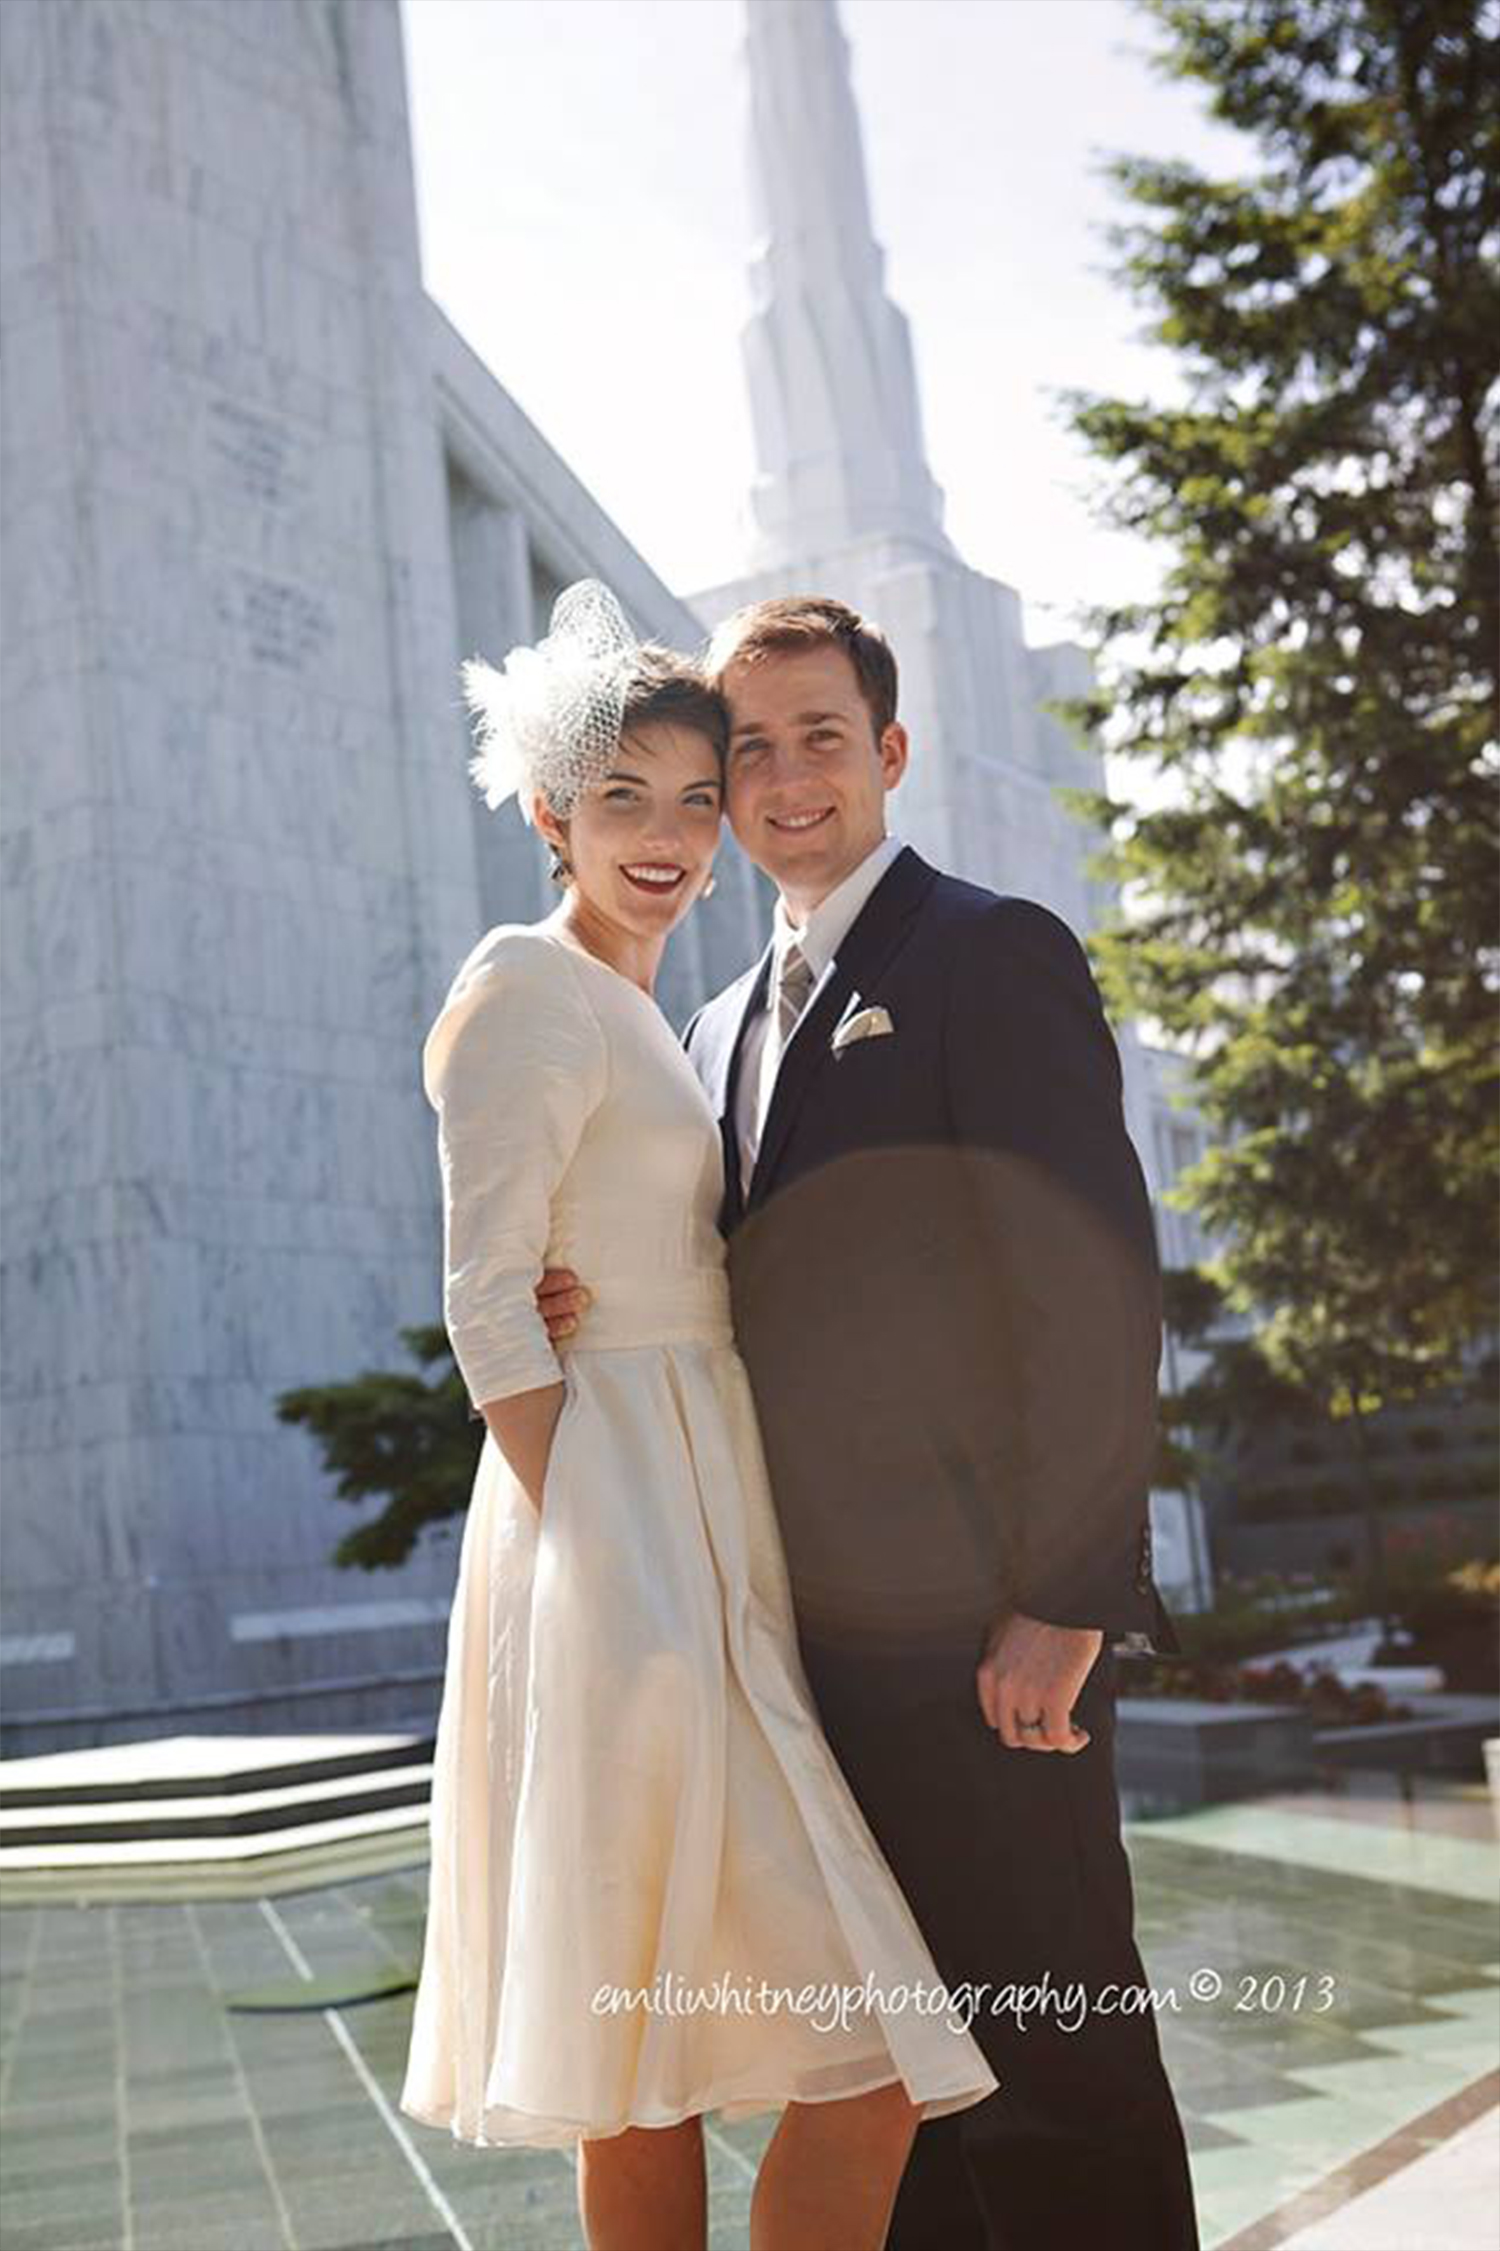 Bride and groom pose in front of temple. Bride wears modest wedding gown in silk and lace fascinator.